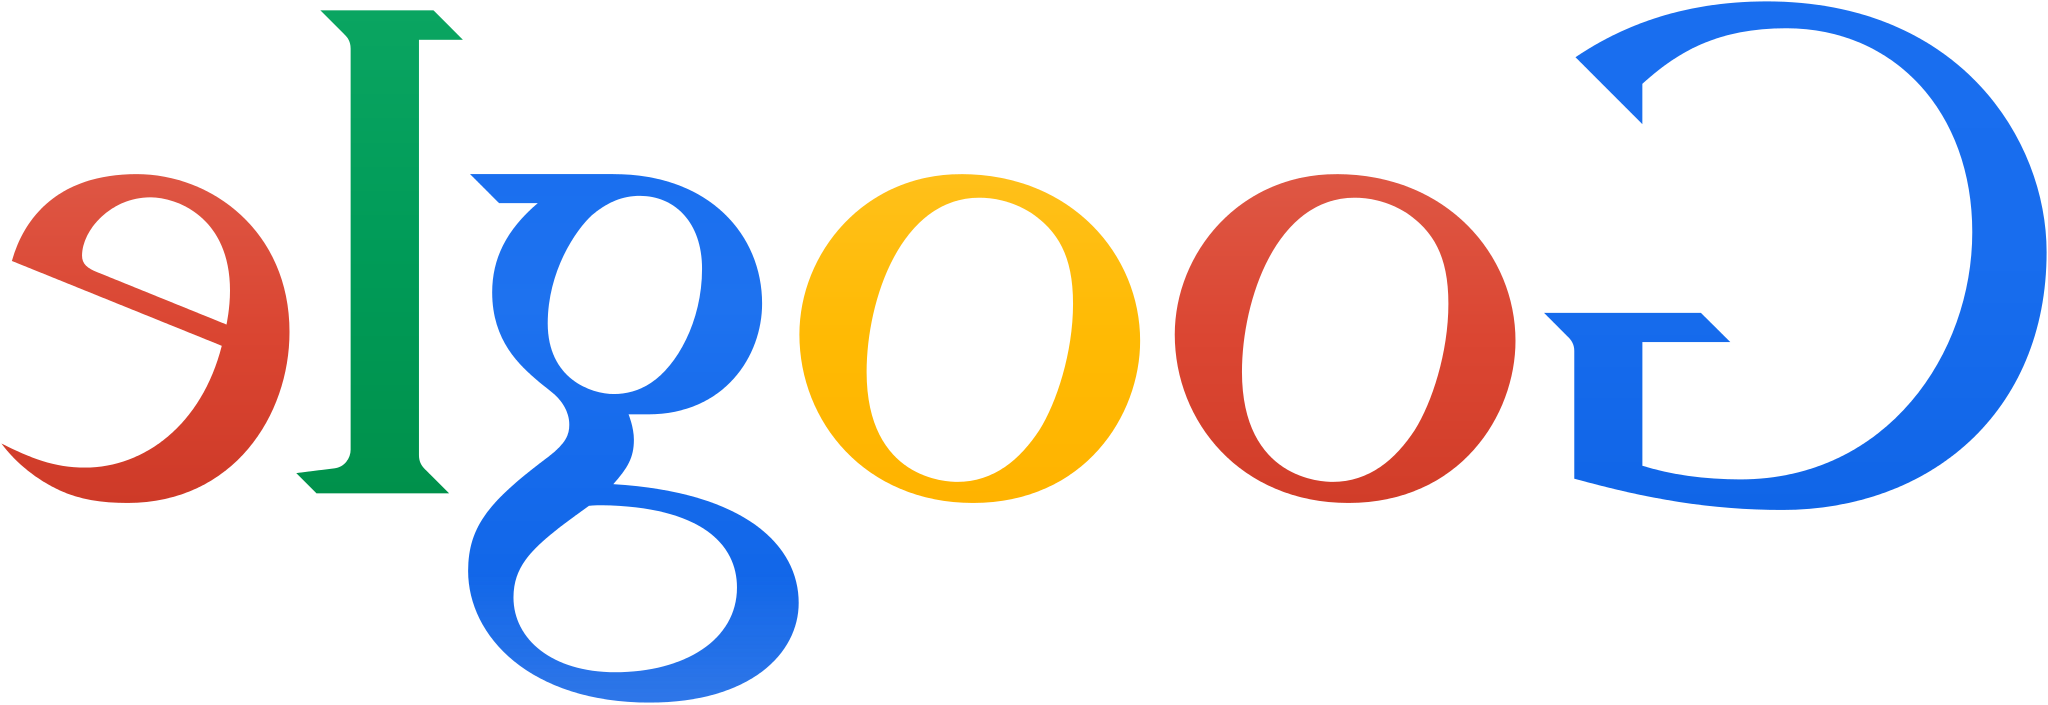 Real clipart and vector. Google logo 2015 png